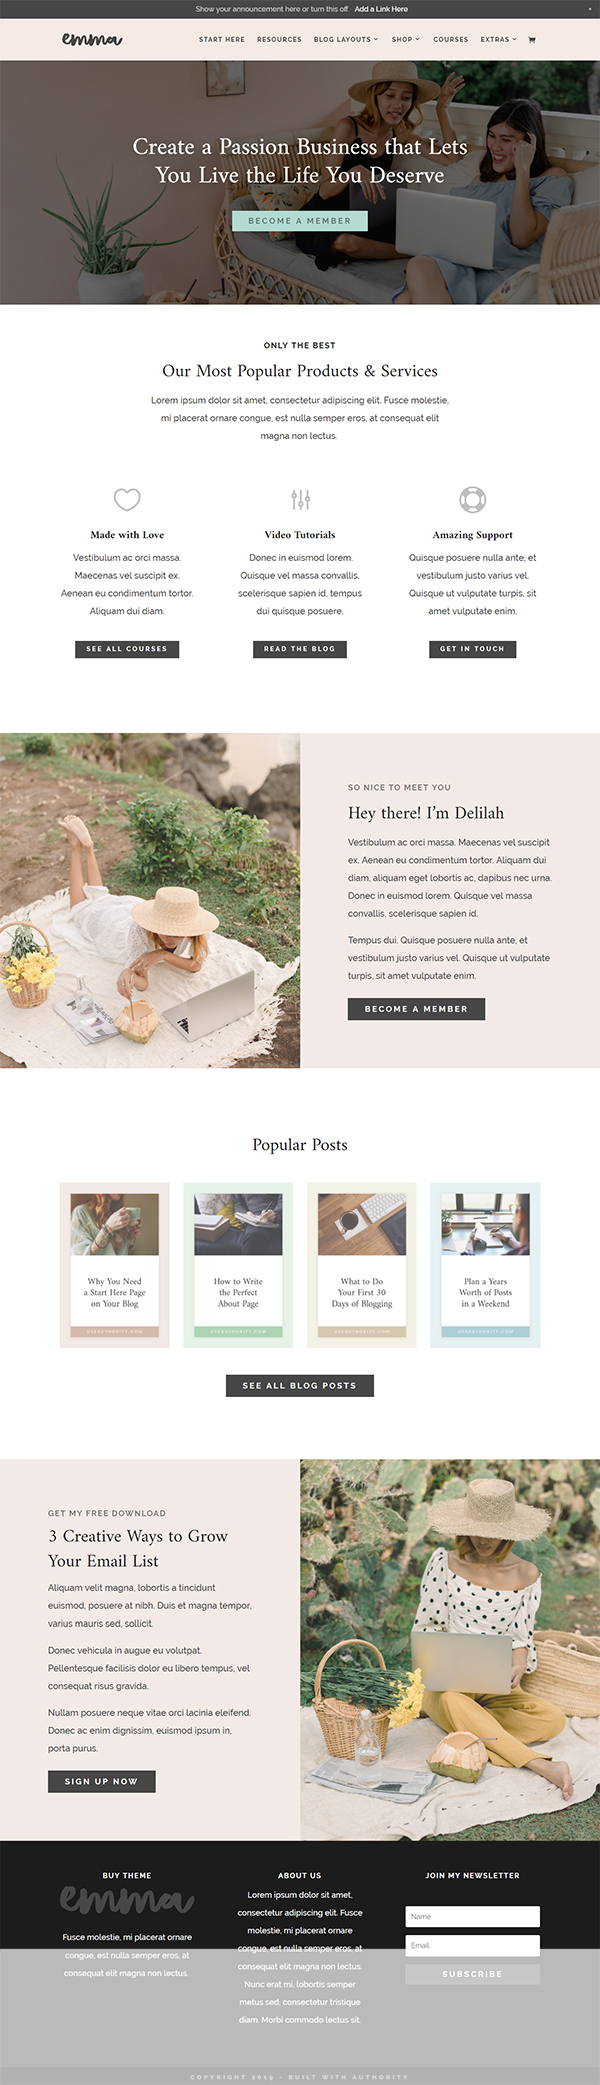 Emma - WordPress Theme Blog